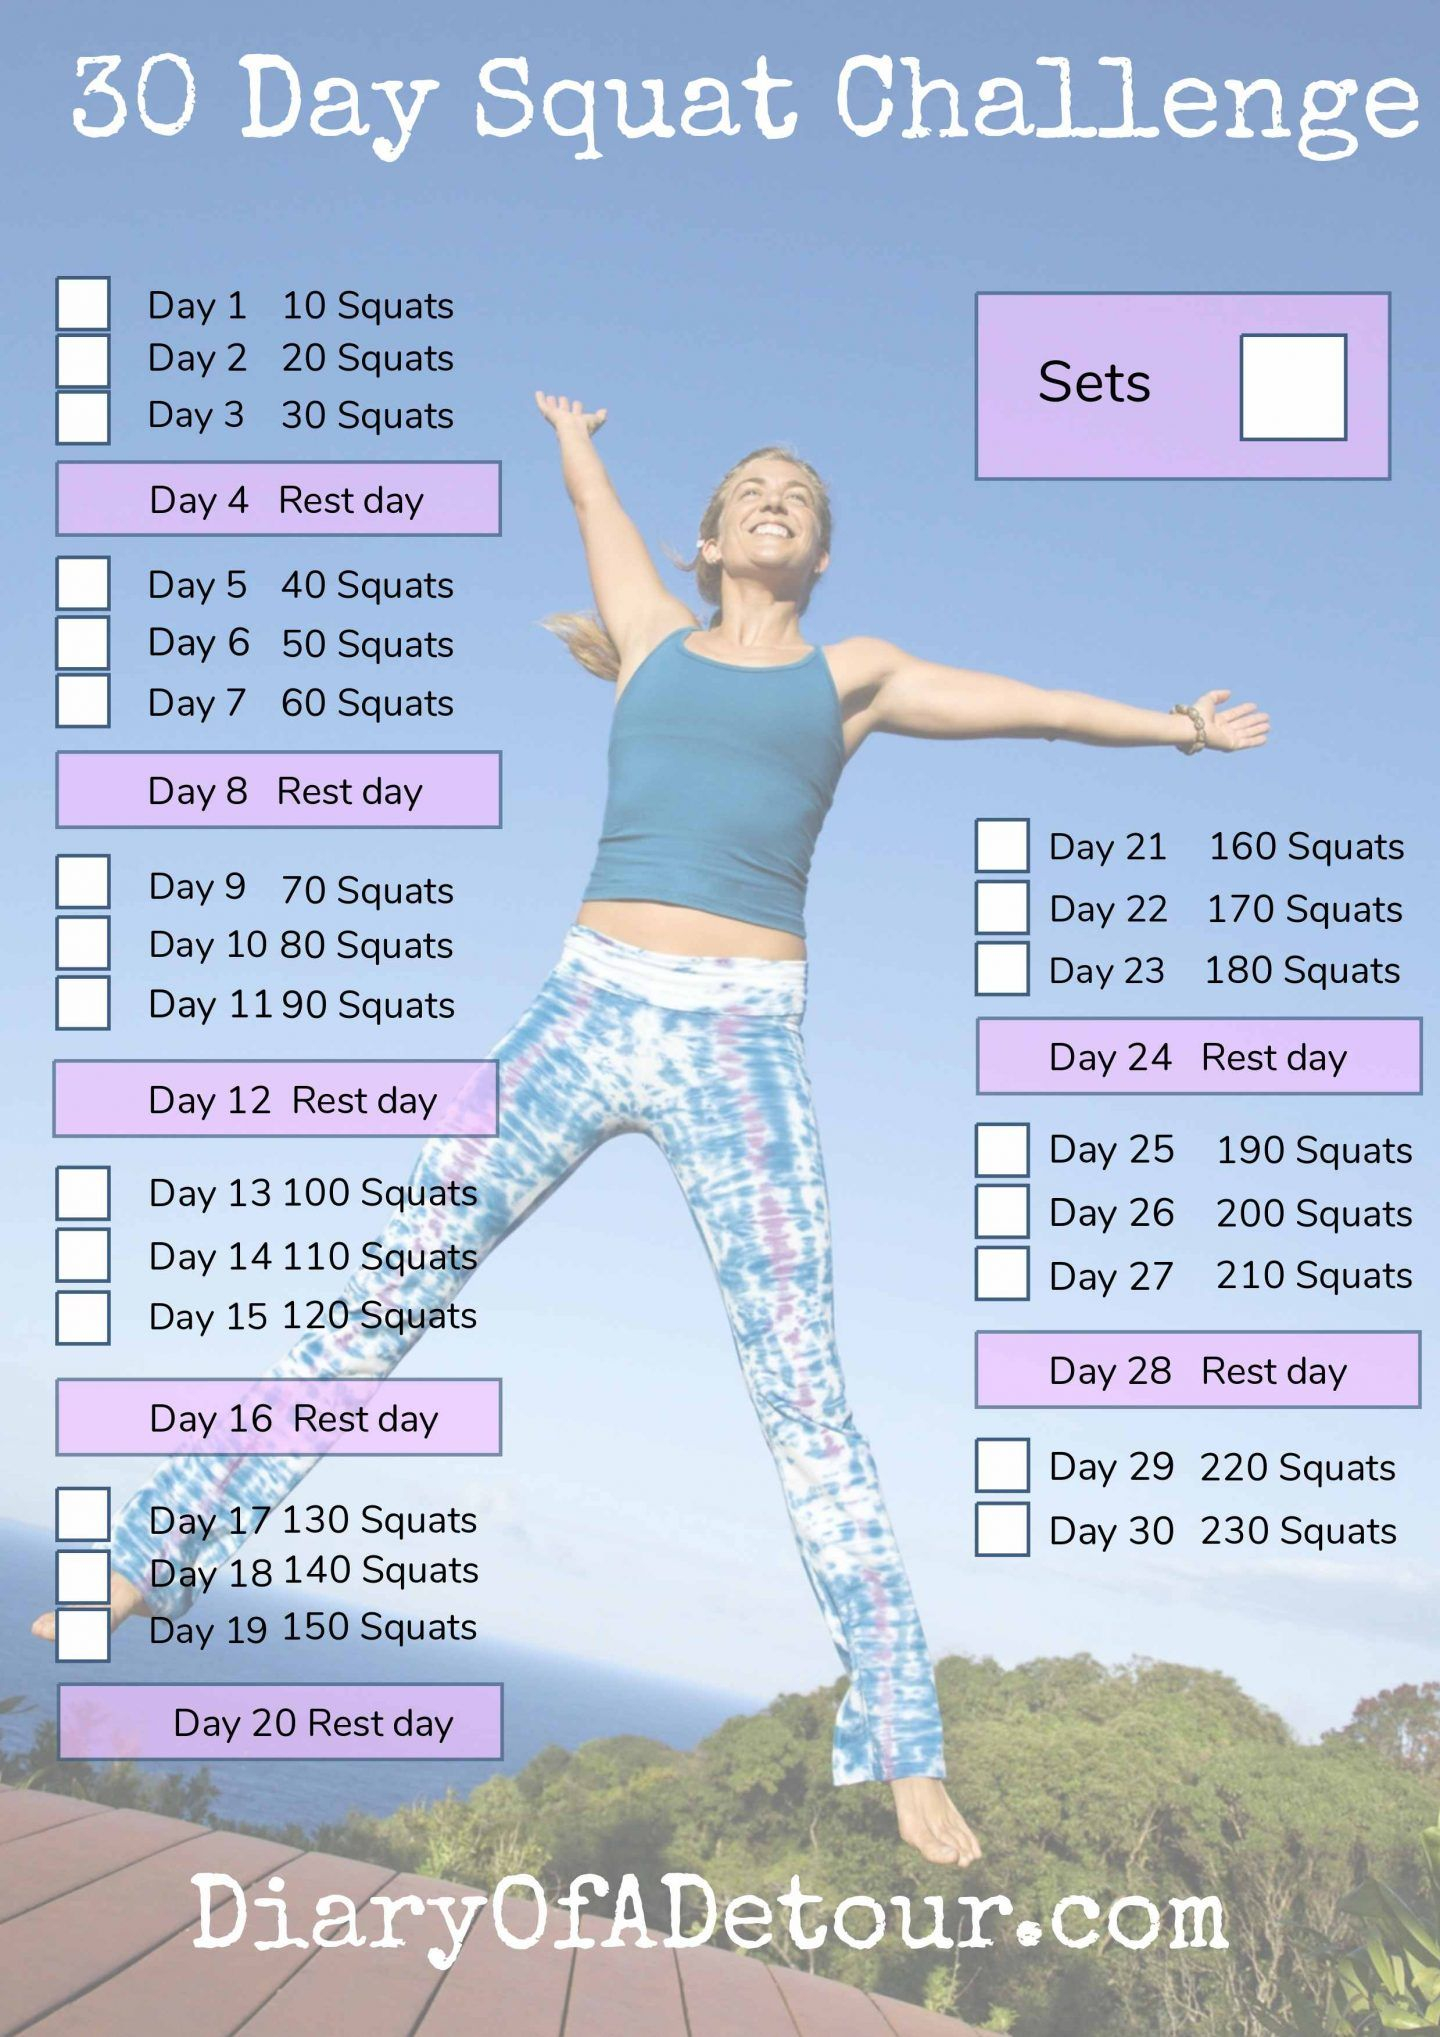 30 Day Squat Challenge : A Fitness Challenge For All intended for 30 Day Squat Challenge Printable